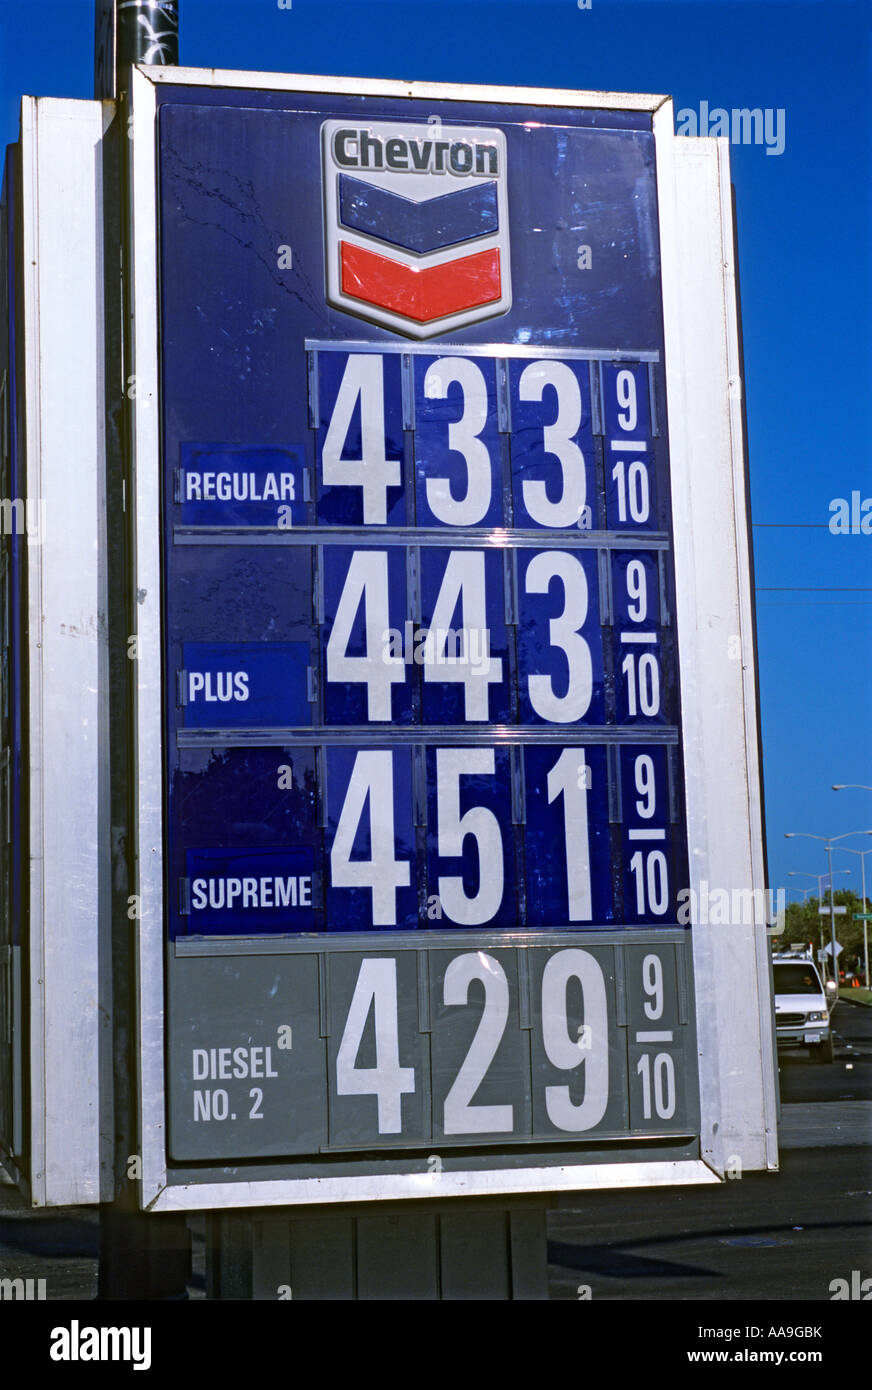 Gas Station Prices >> Chevron Gas Station Sign Showing Possible Future Price Of Four Us